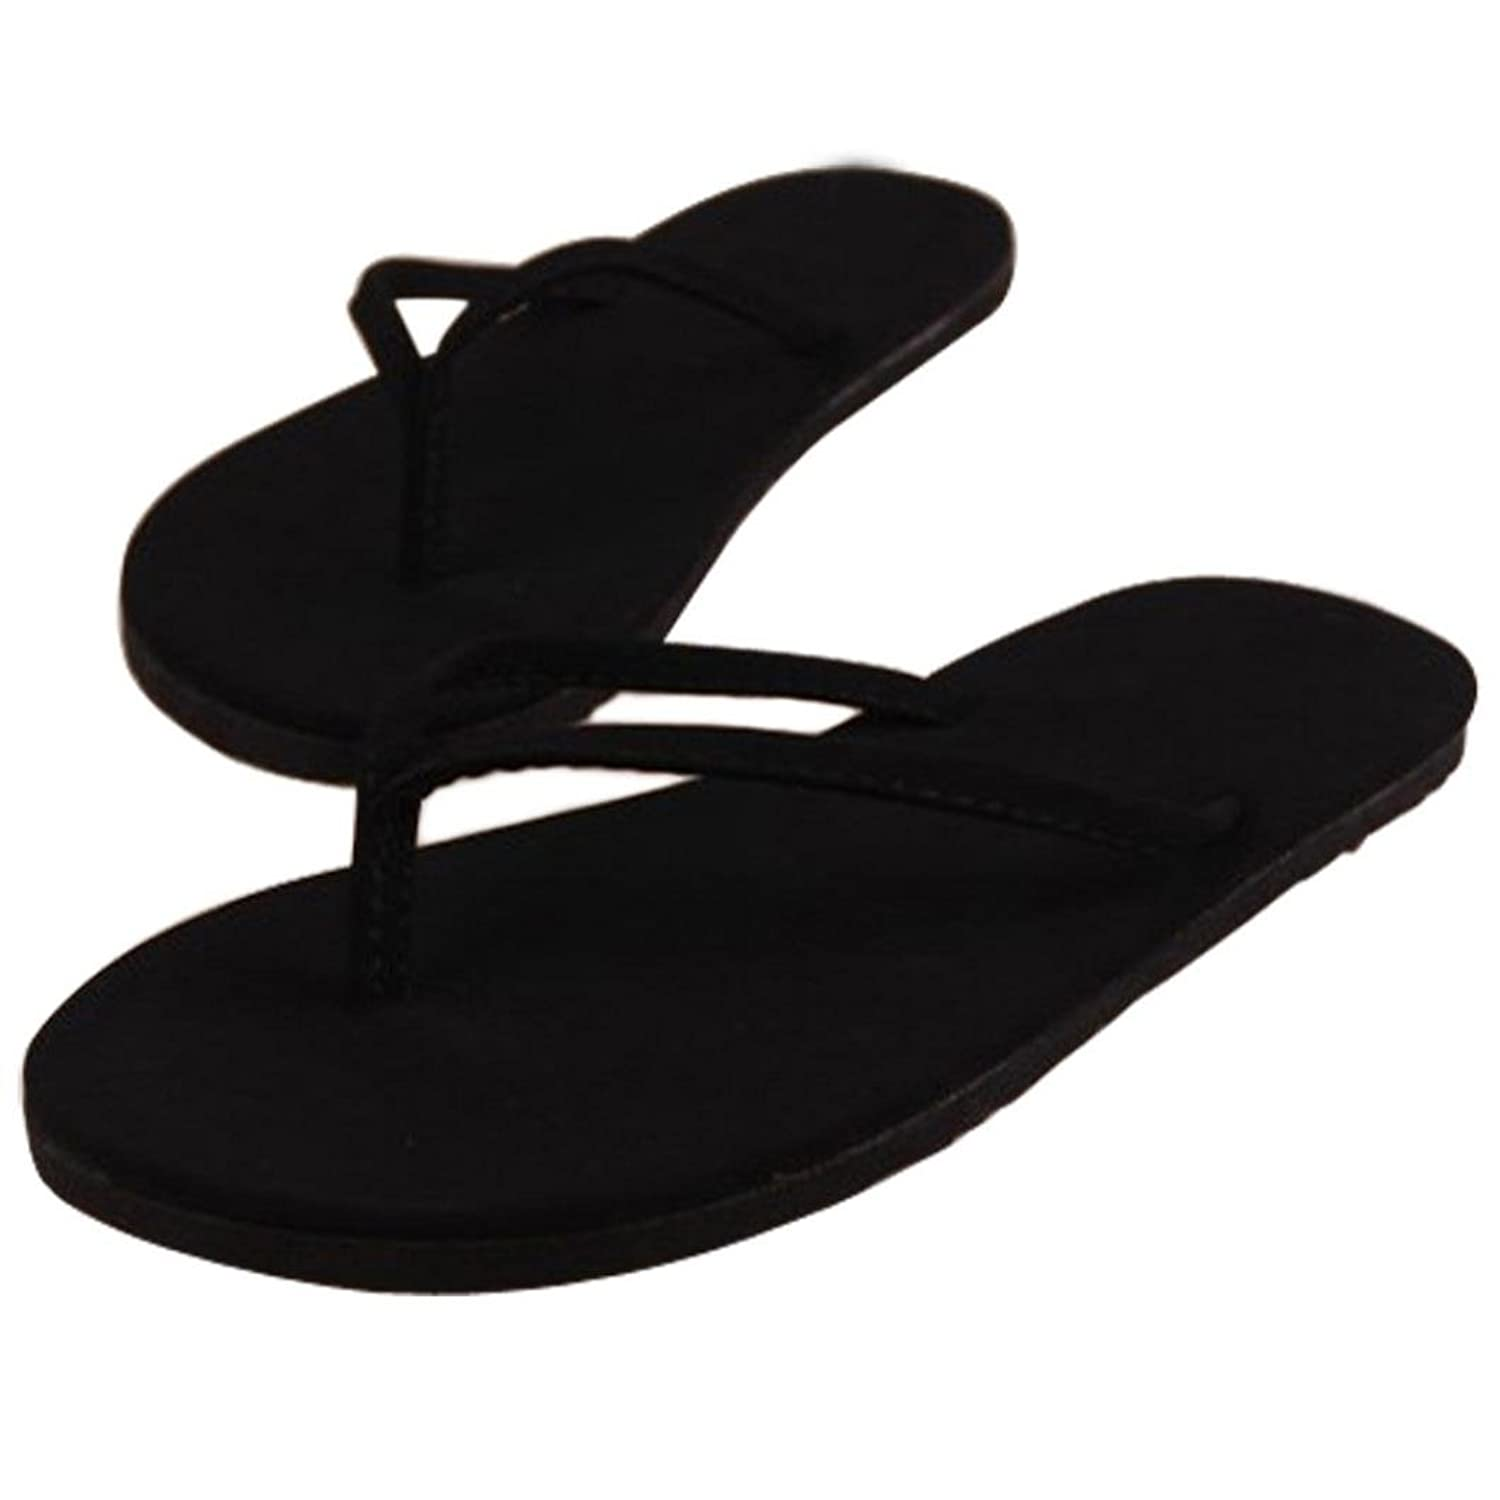 Women Flip-flops, Internet Summer Flip Flops Shoes Sandals Slipper:  Amazon.co.uk: Shoes & Bags